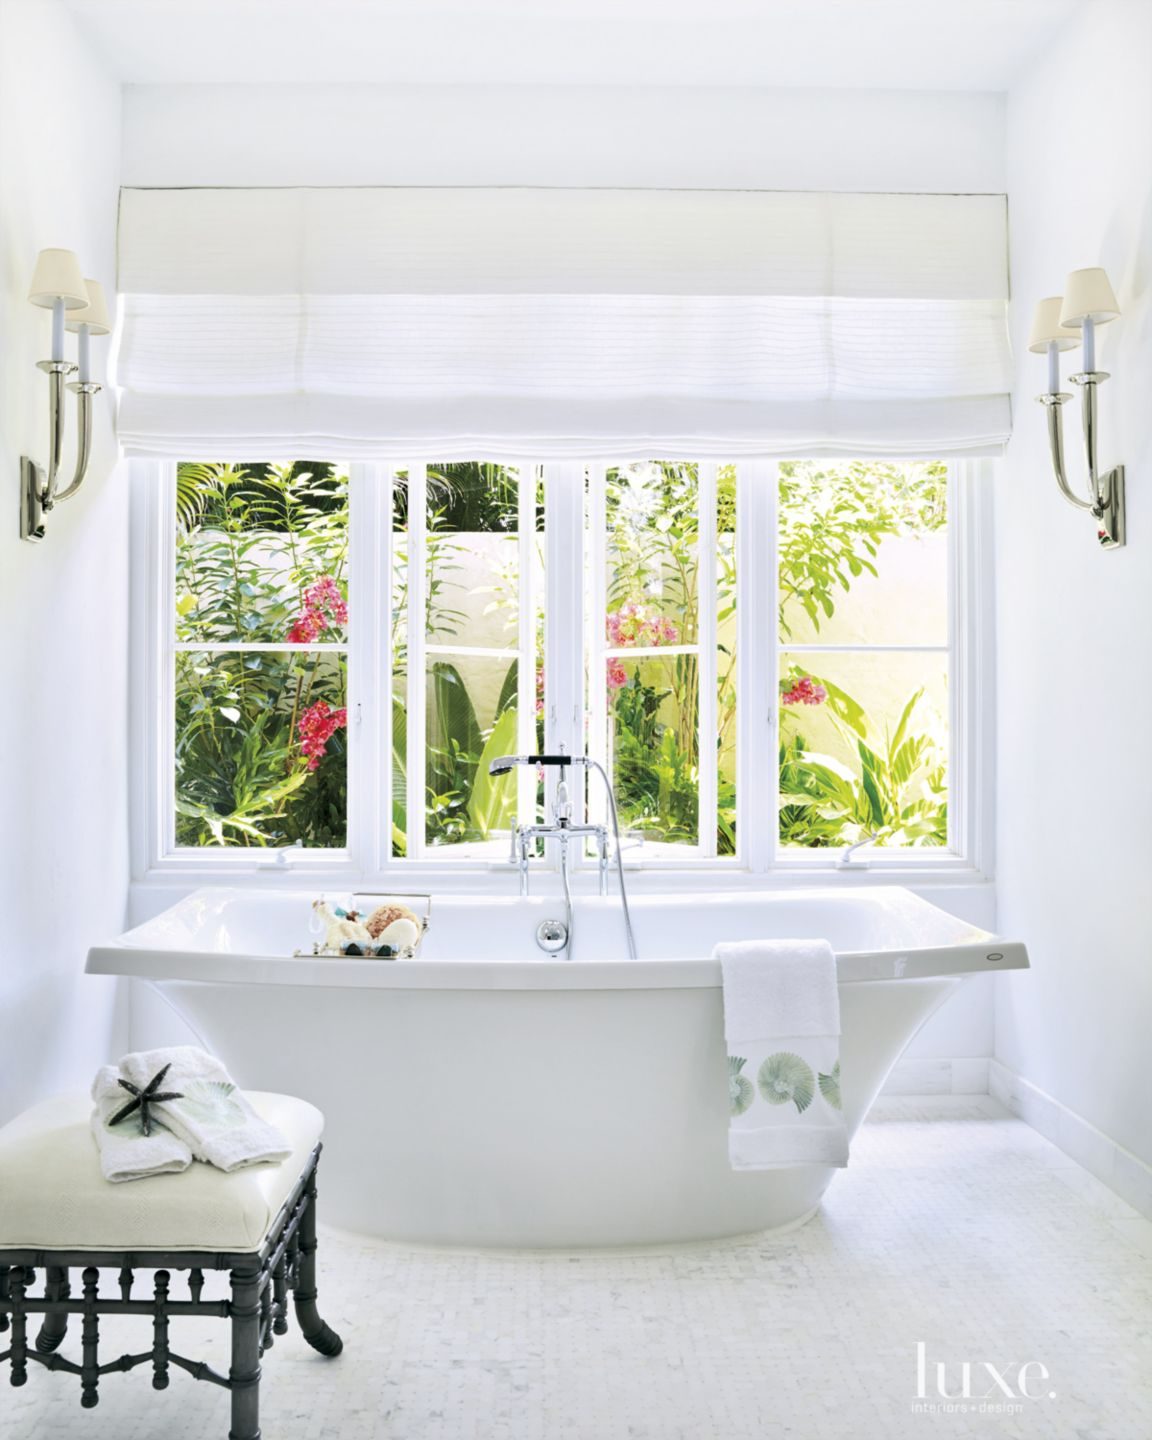 Traditional White Master Bath with Freestanding Tub